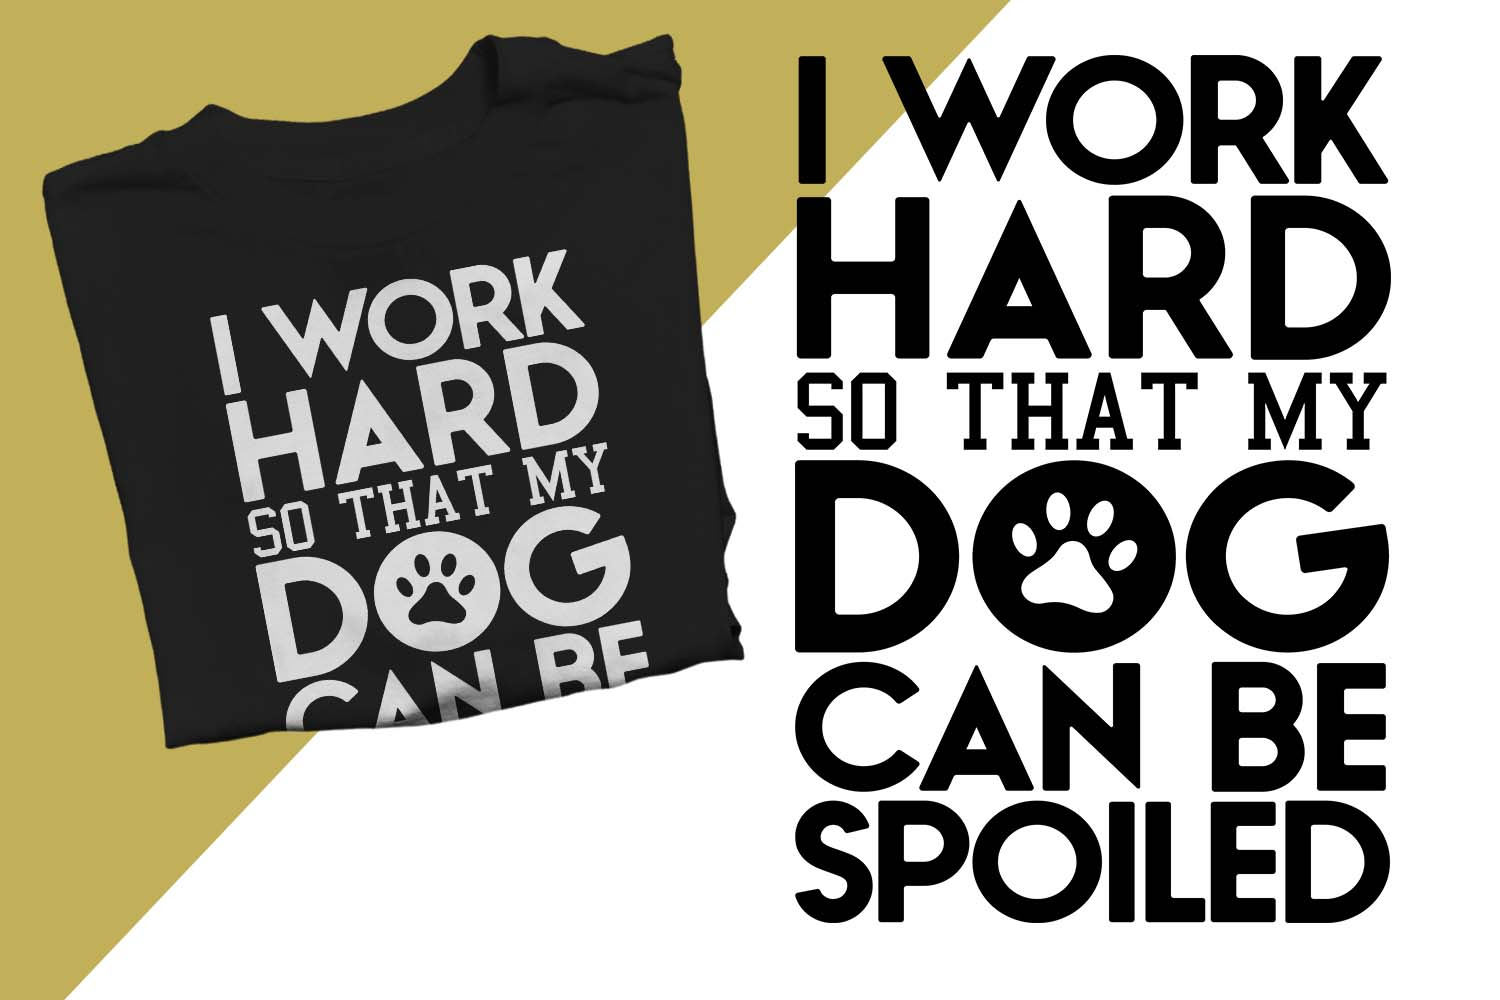 My dog can be spoiled Printable example image 1